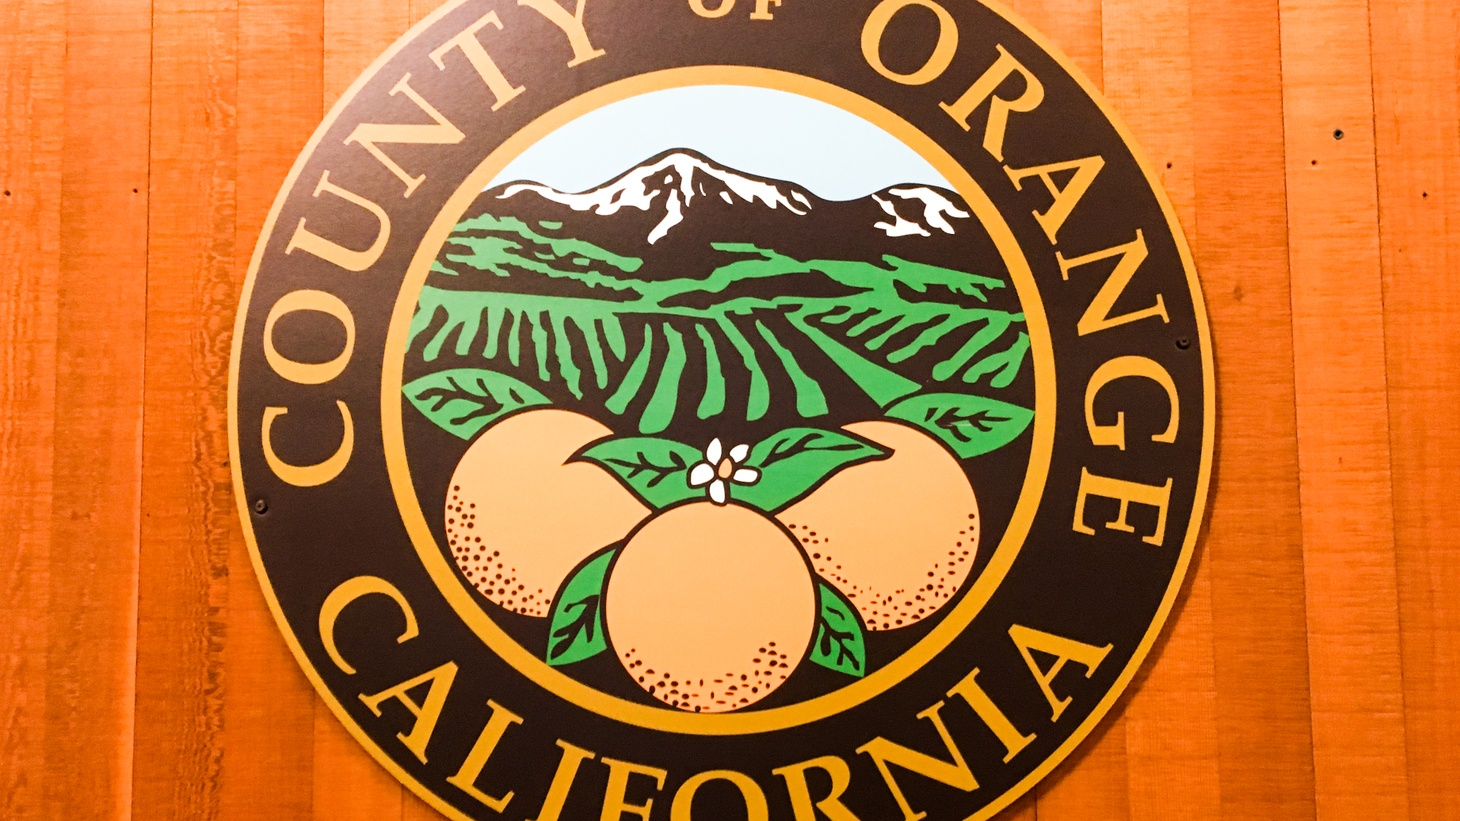 The seal of Orange County.